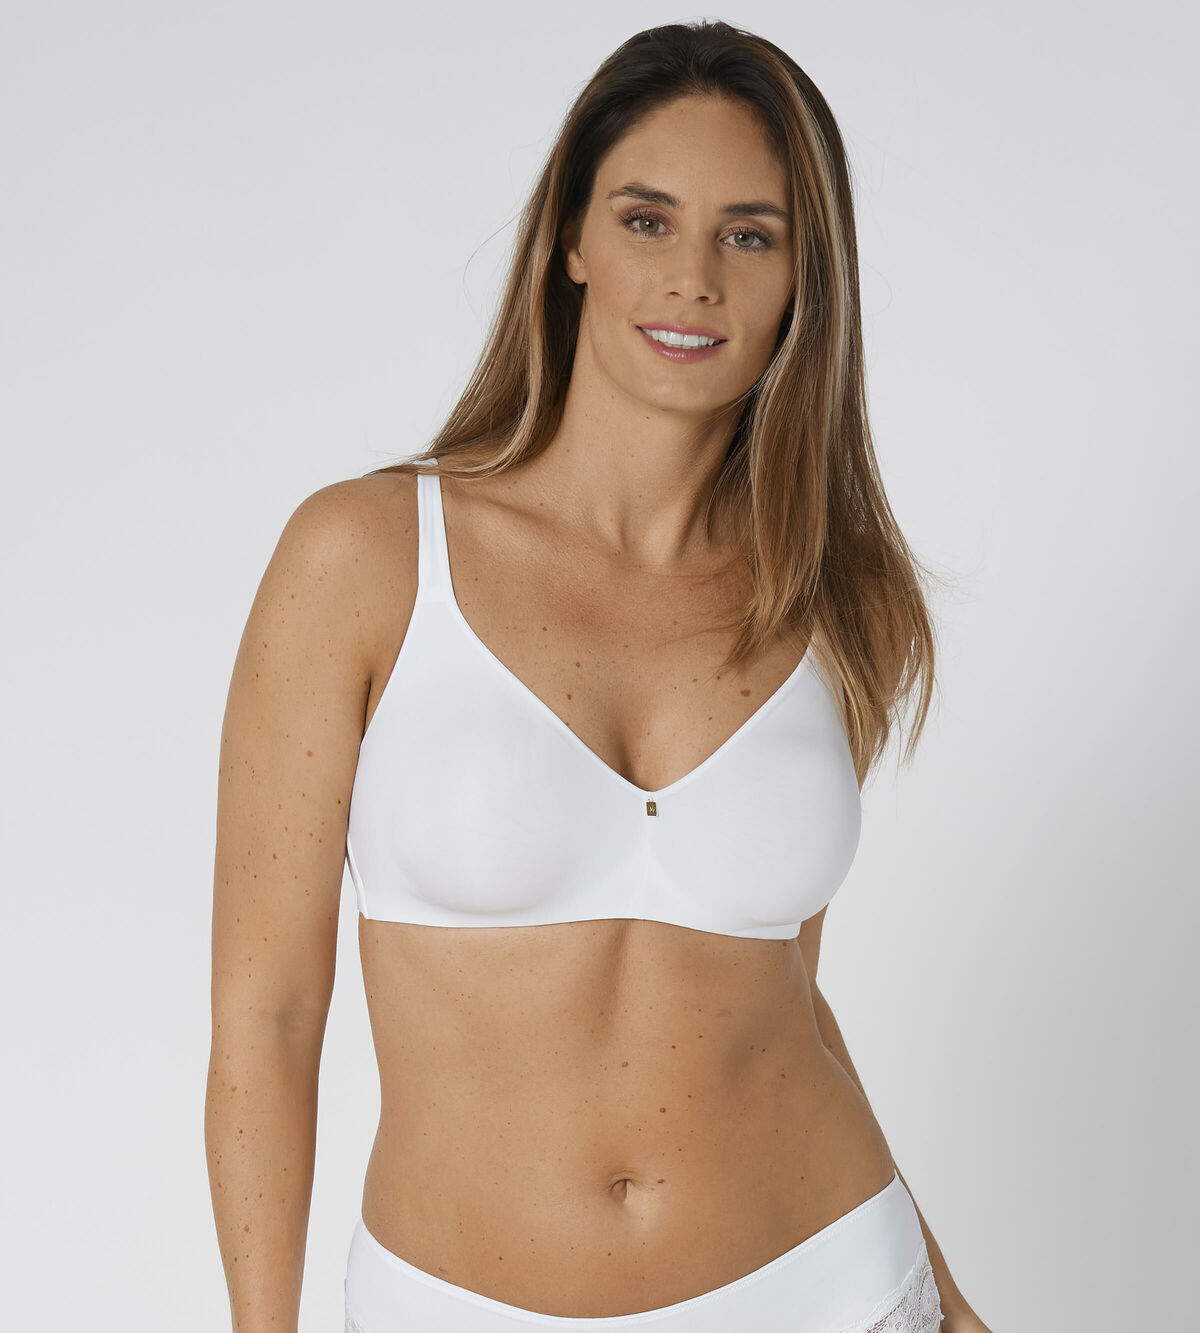 TRIUMPH Body Make-Up Essentials WHP con ferretto mezza coppa imbottito Reggiseno Bianco 40C CS